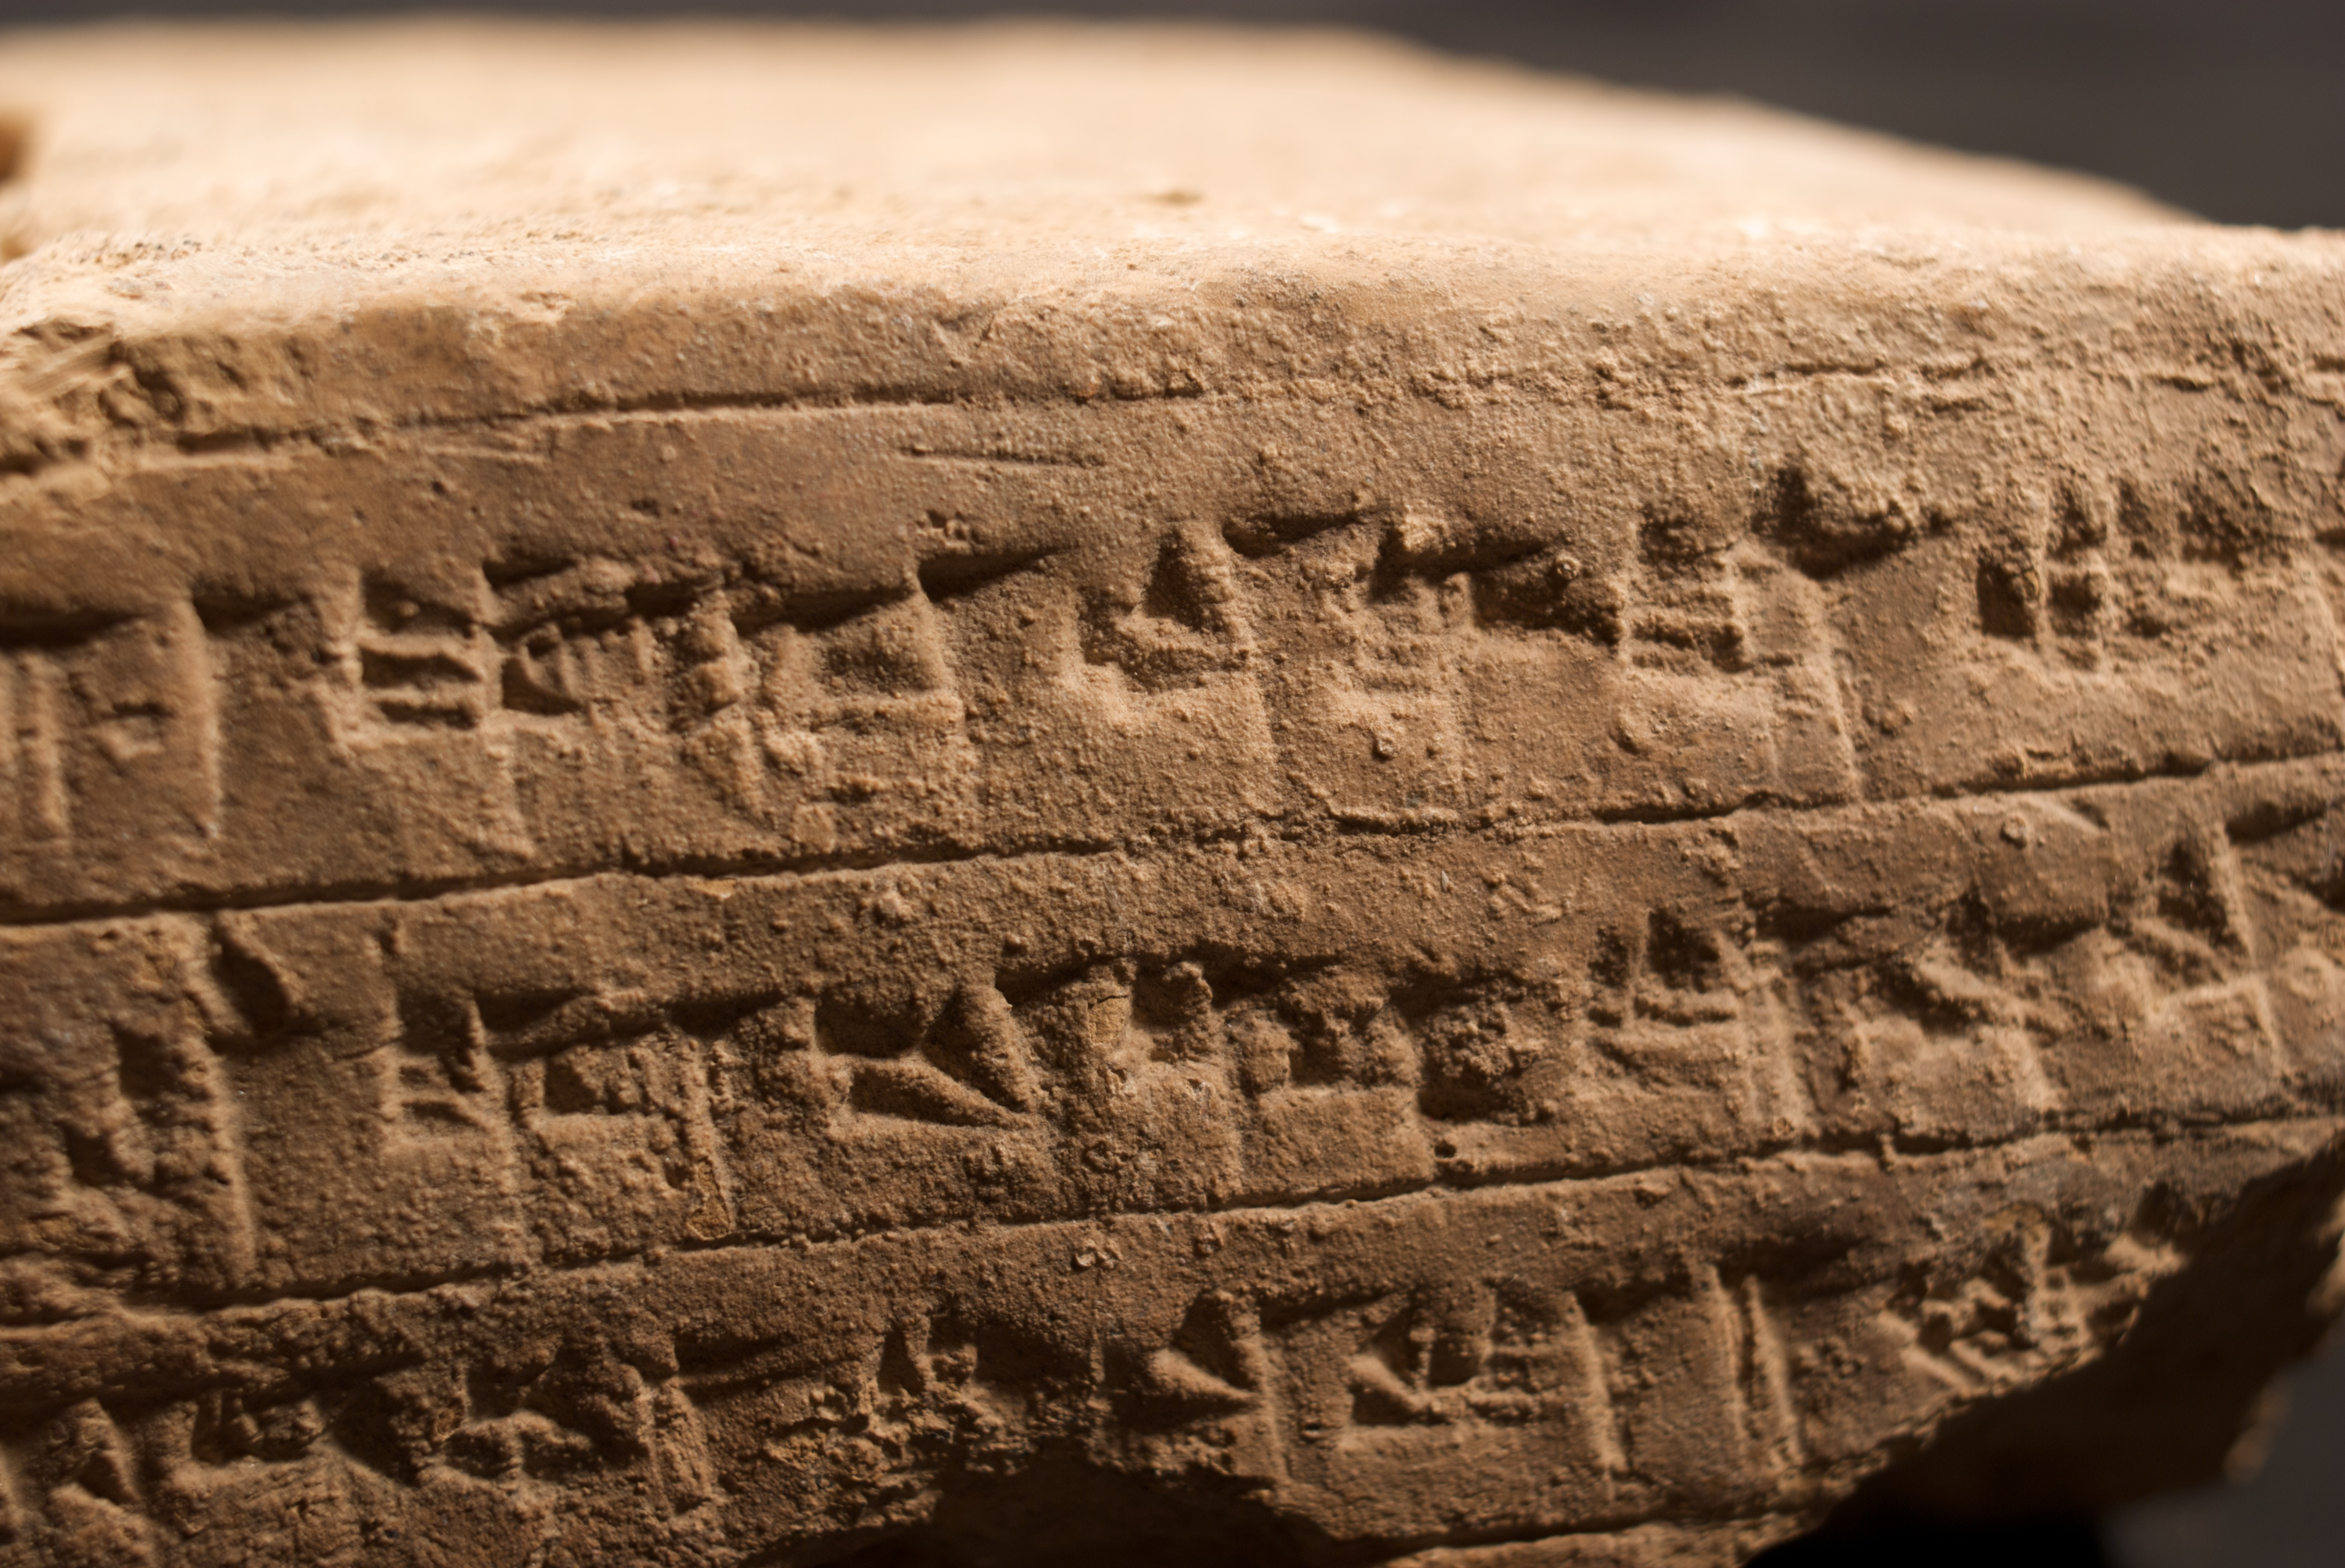 "An inscribed baked brick from the ziggurat at Al Untash Napirisha, modern Chogha Zanbil, in south western Iran (Khuzestan province). This site was also known as Dur Untash to the Assyrians. The text is a dedicatory inscription that begins:  ""I, Untash Napirisha, son of Humbanumena...""  Date:  13th century B.C.E.  More information:  http://www.livius.org/cg-cm/choga_zanbil/choga_zanbil2.html"